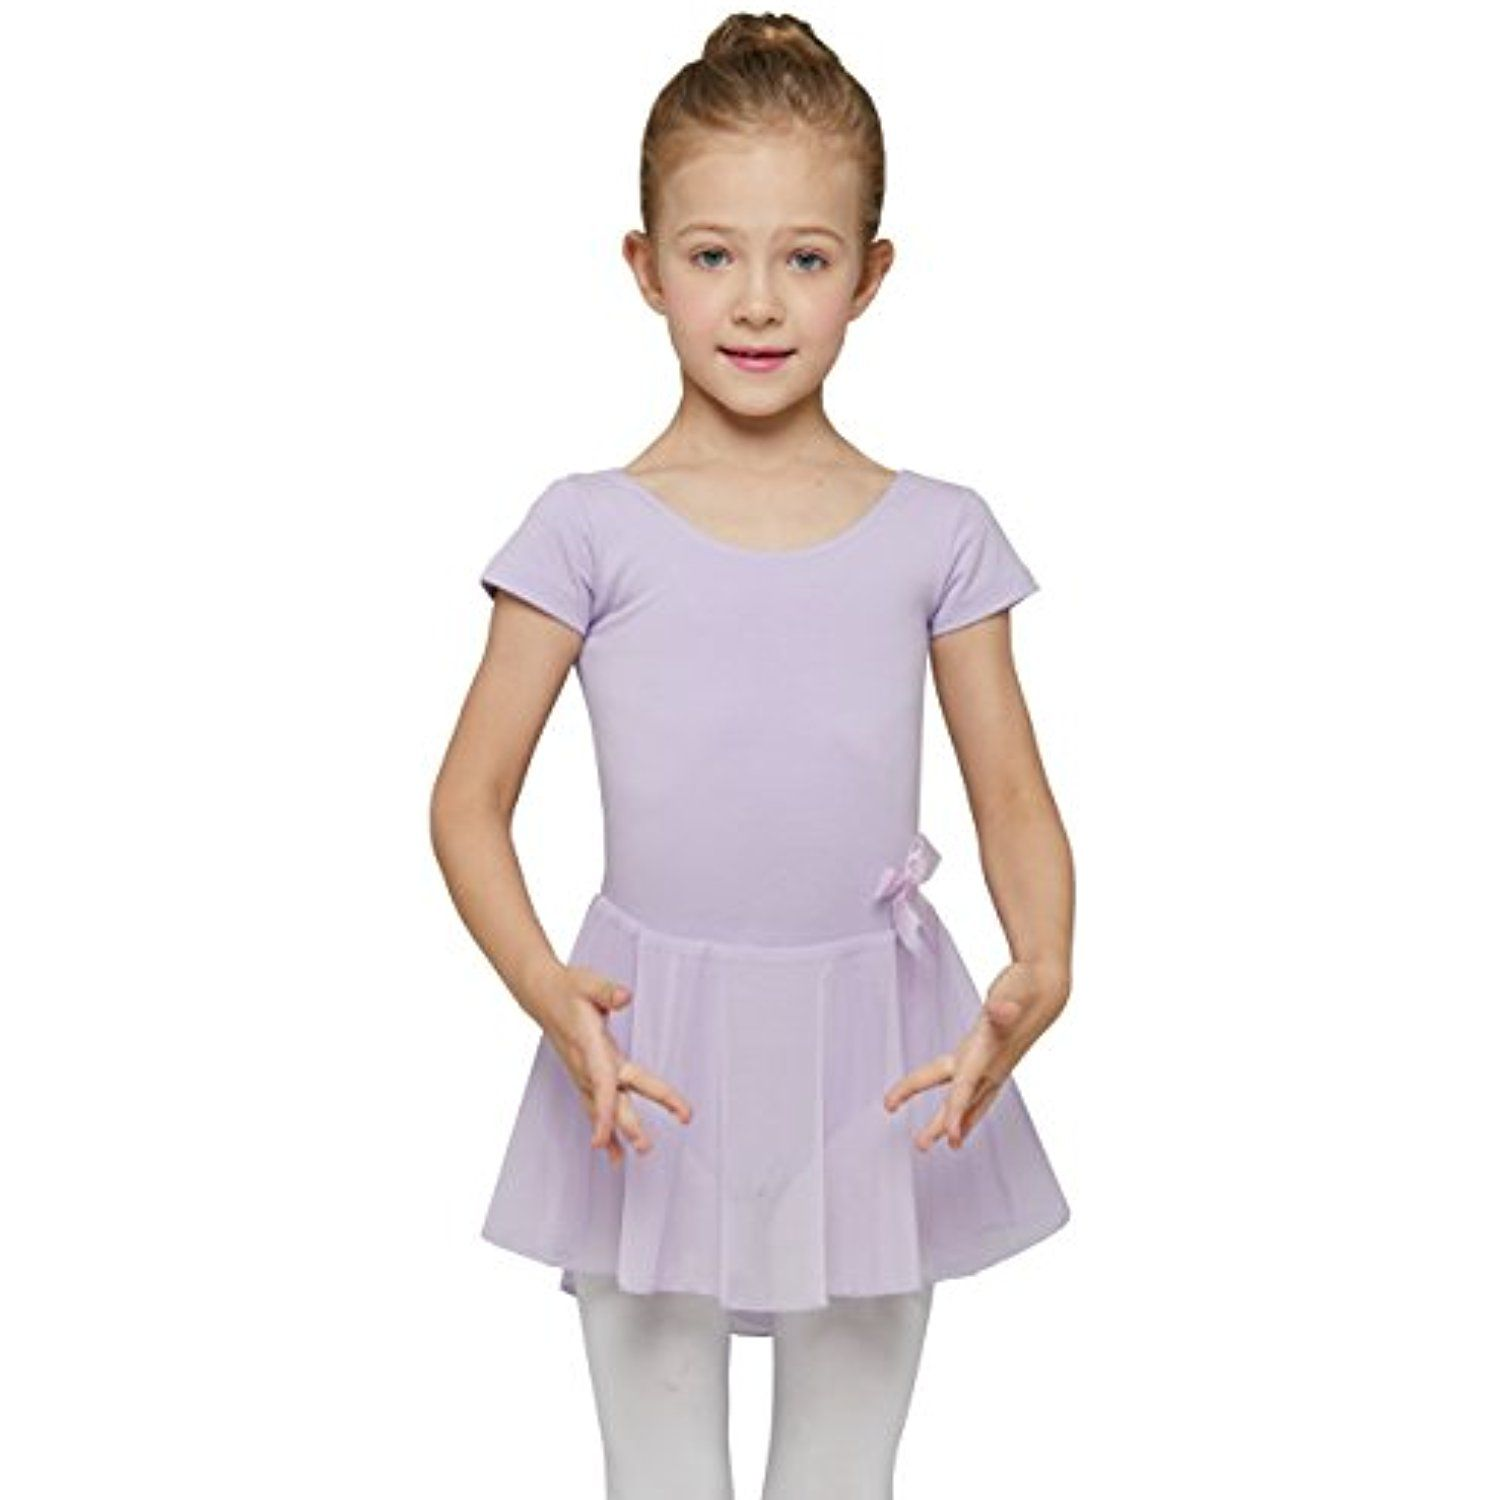 12bcc11ed4a5 Mdnmd Girls  Skirted Short Sleeve Leotard   You can get more details ...